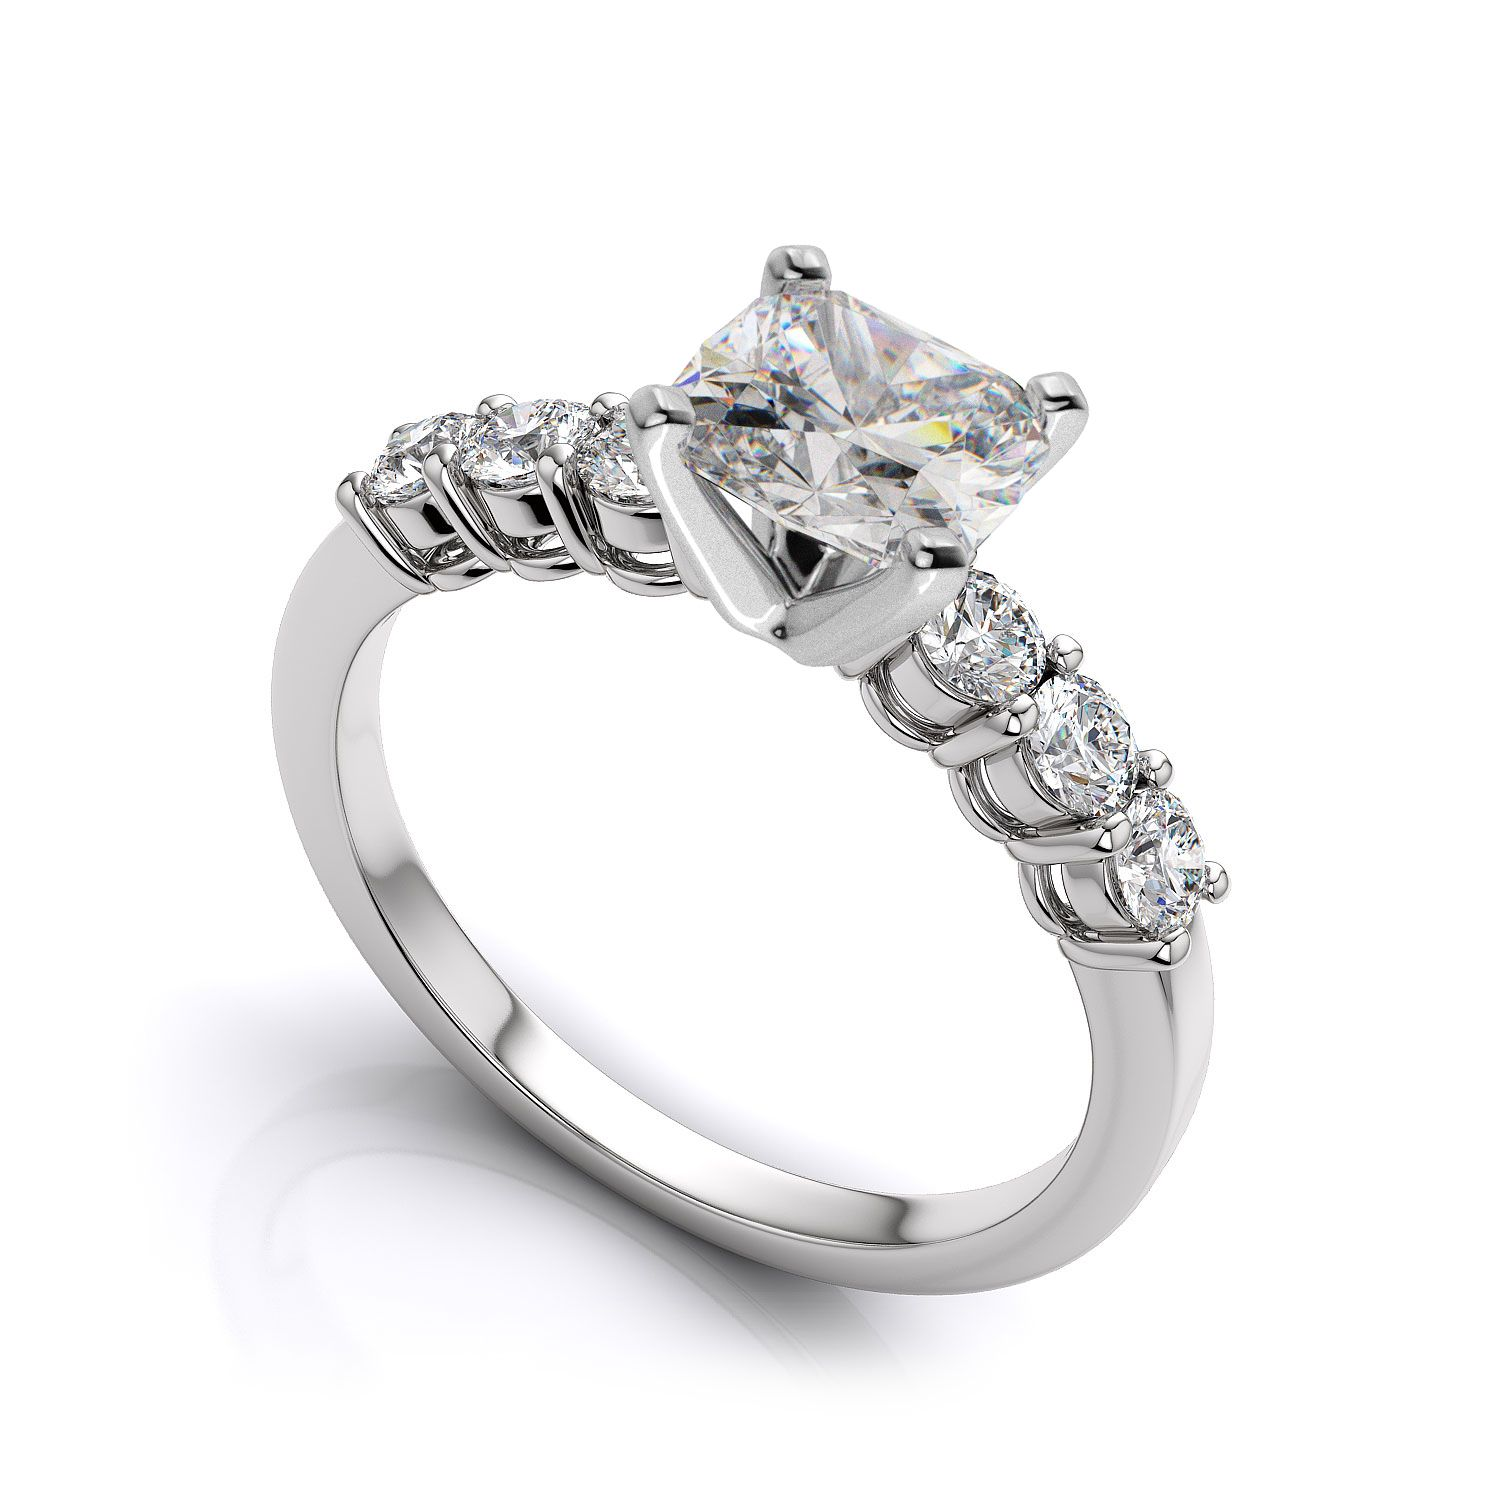 3 00ct Excellent Cushion Cut Diamond Side Round Stone Engagement Ring 14k White Gold Finish